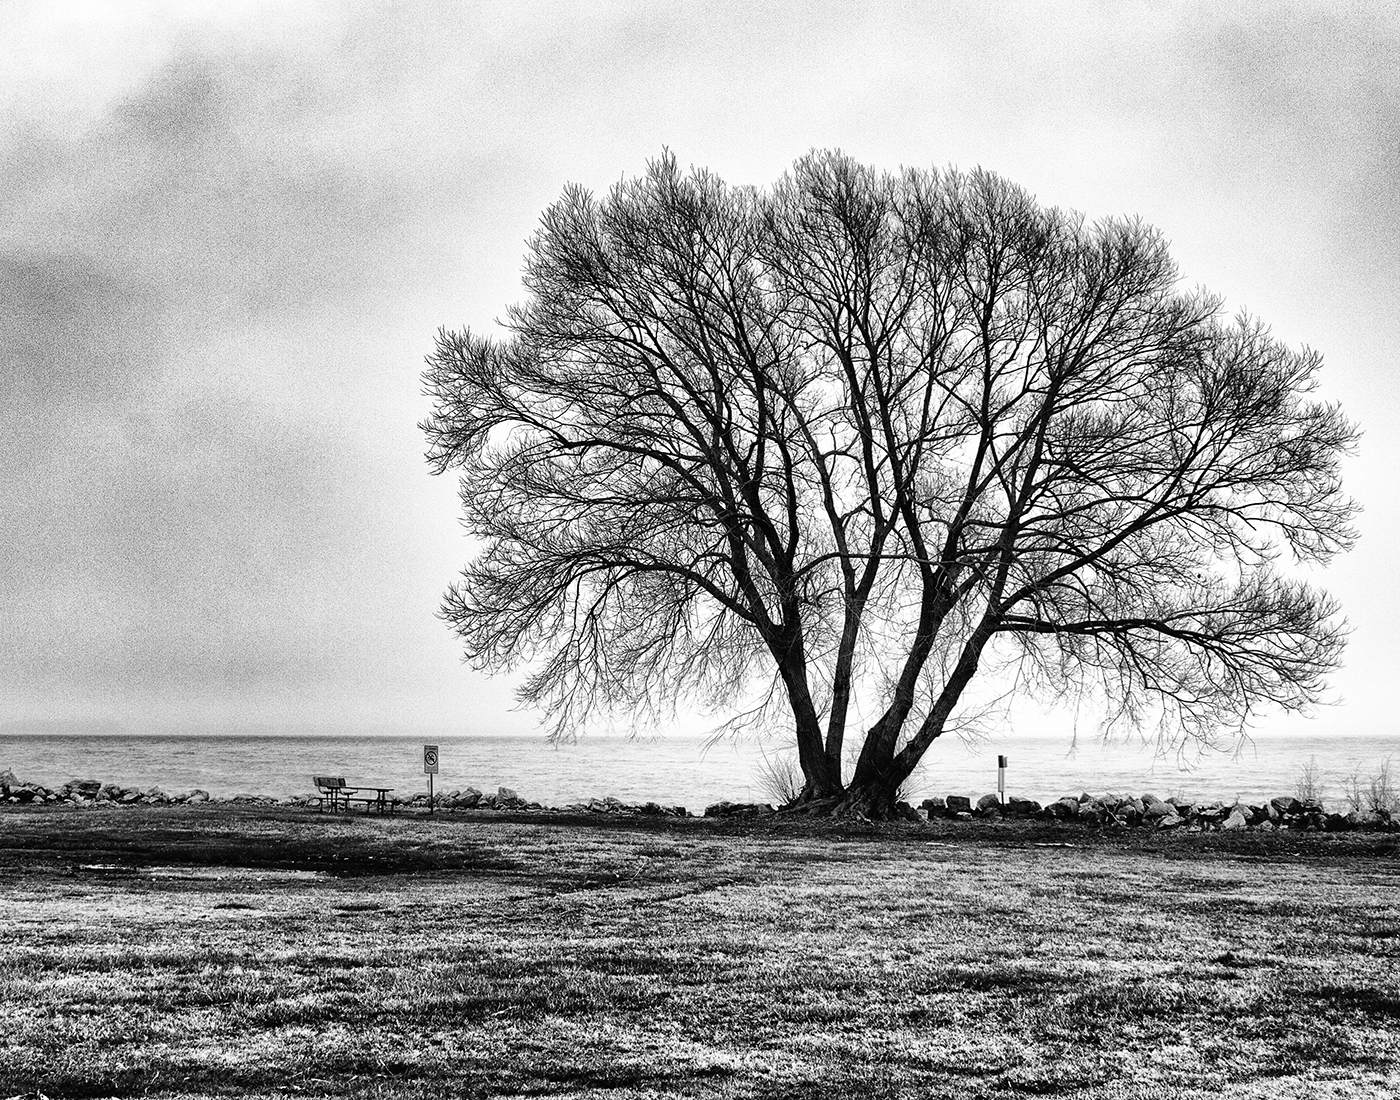 This is a tree I photographed in Michigan's Lake Erie Metro Parks in March 2012. When I took this photograph, I knew that I was going to make it into a B&W photograph.